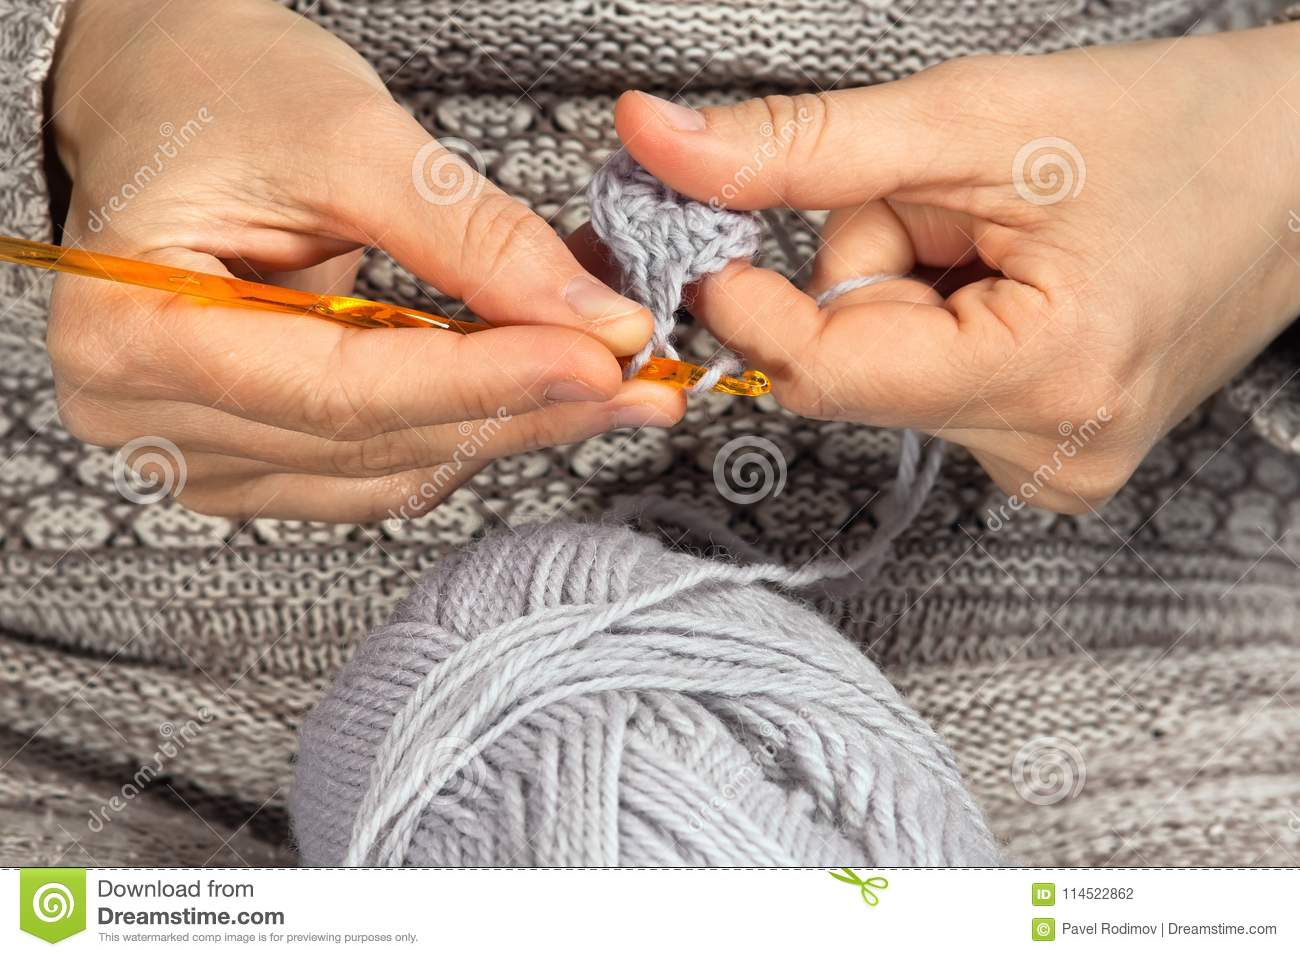 Hands Knitting With Crochet Hook And Grey Yarn Stock Photo Image